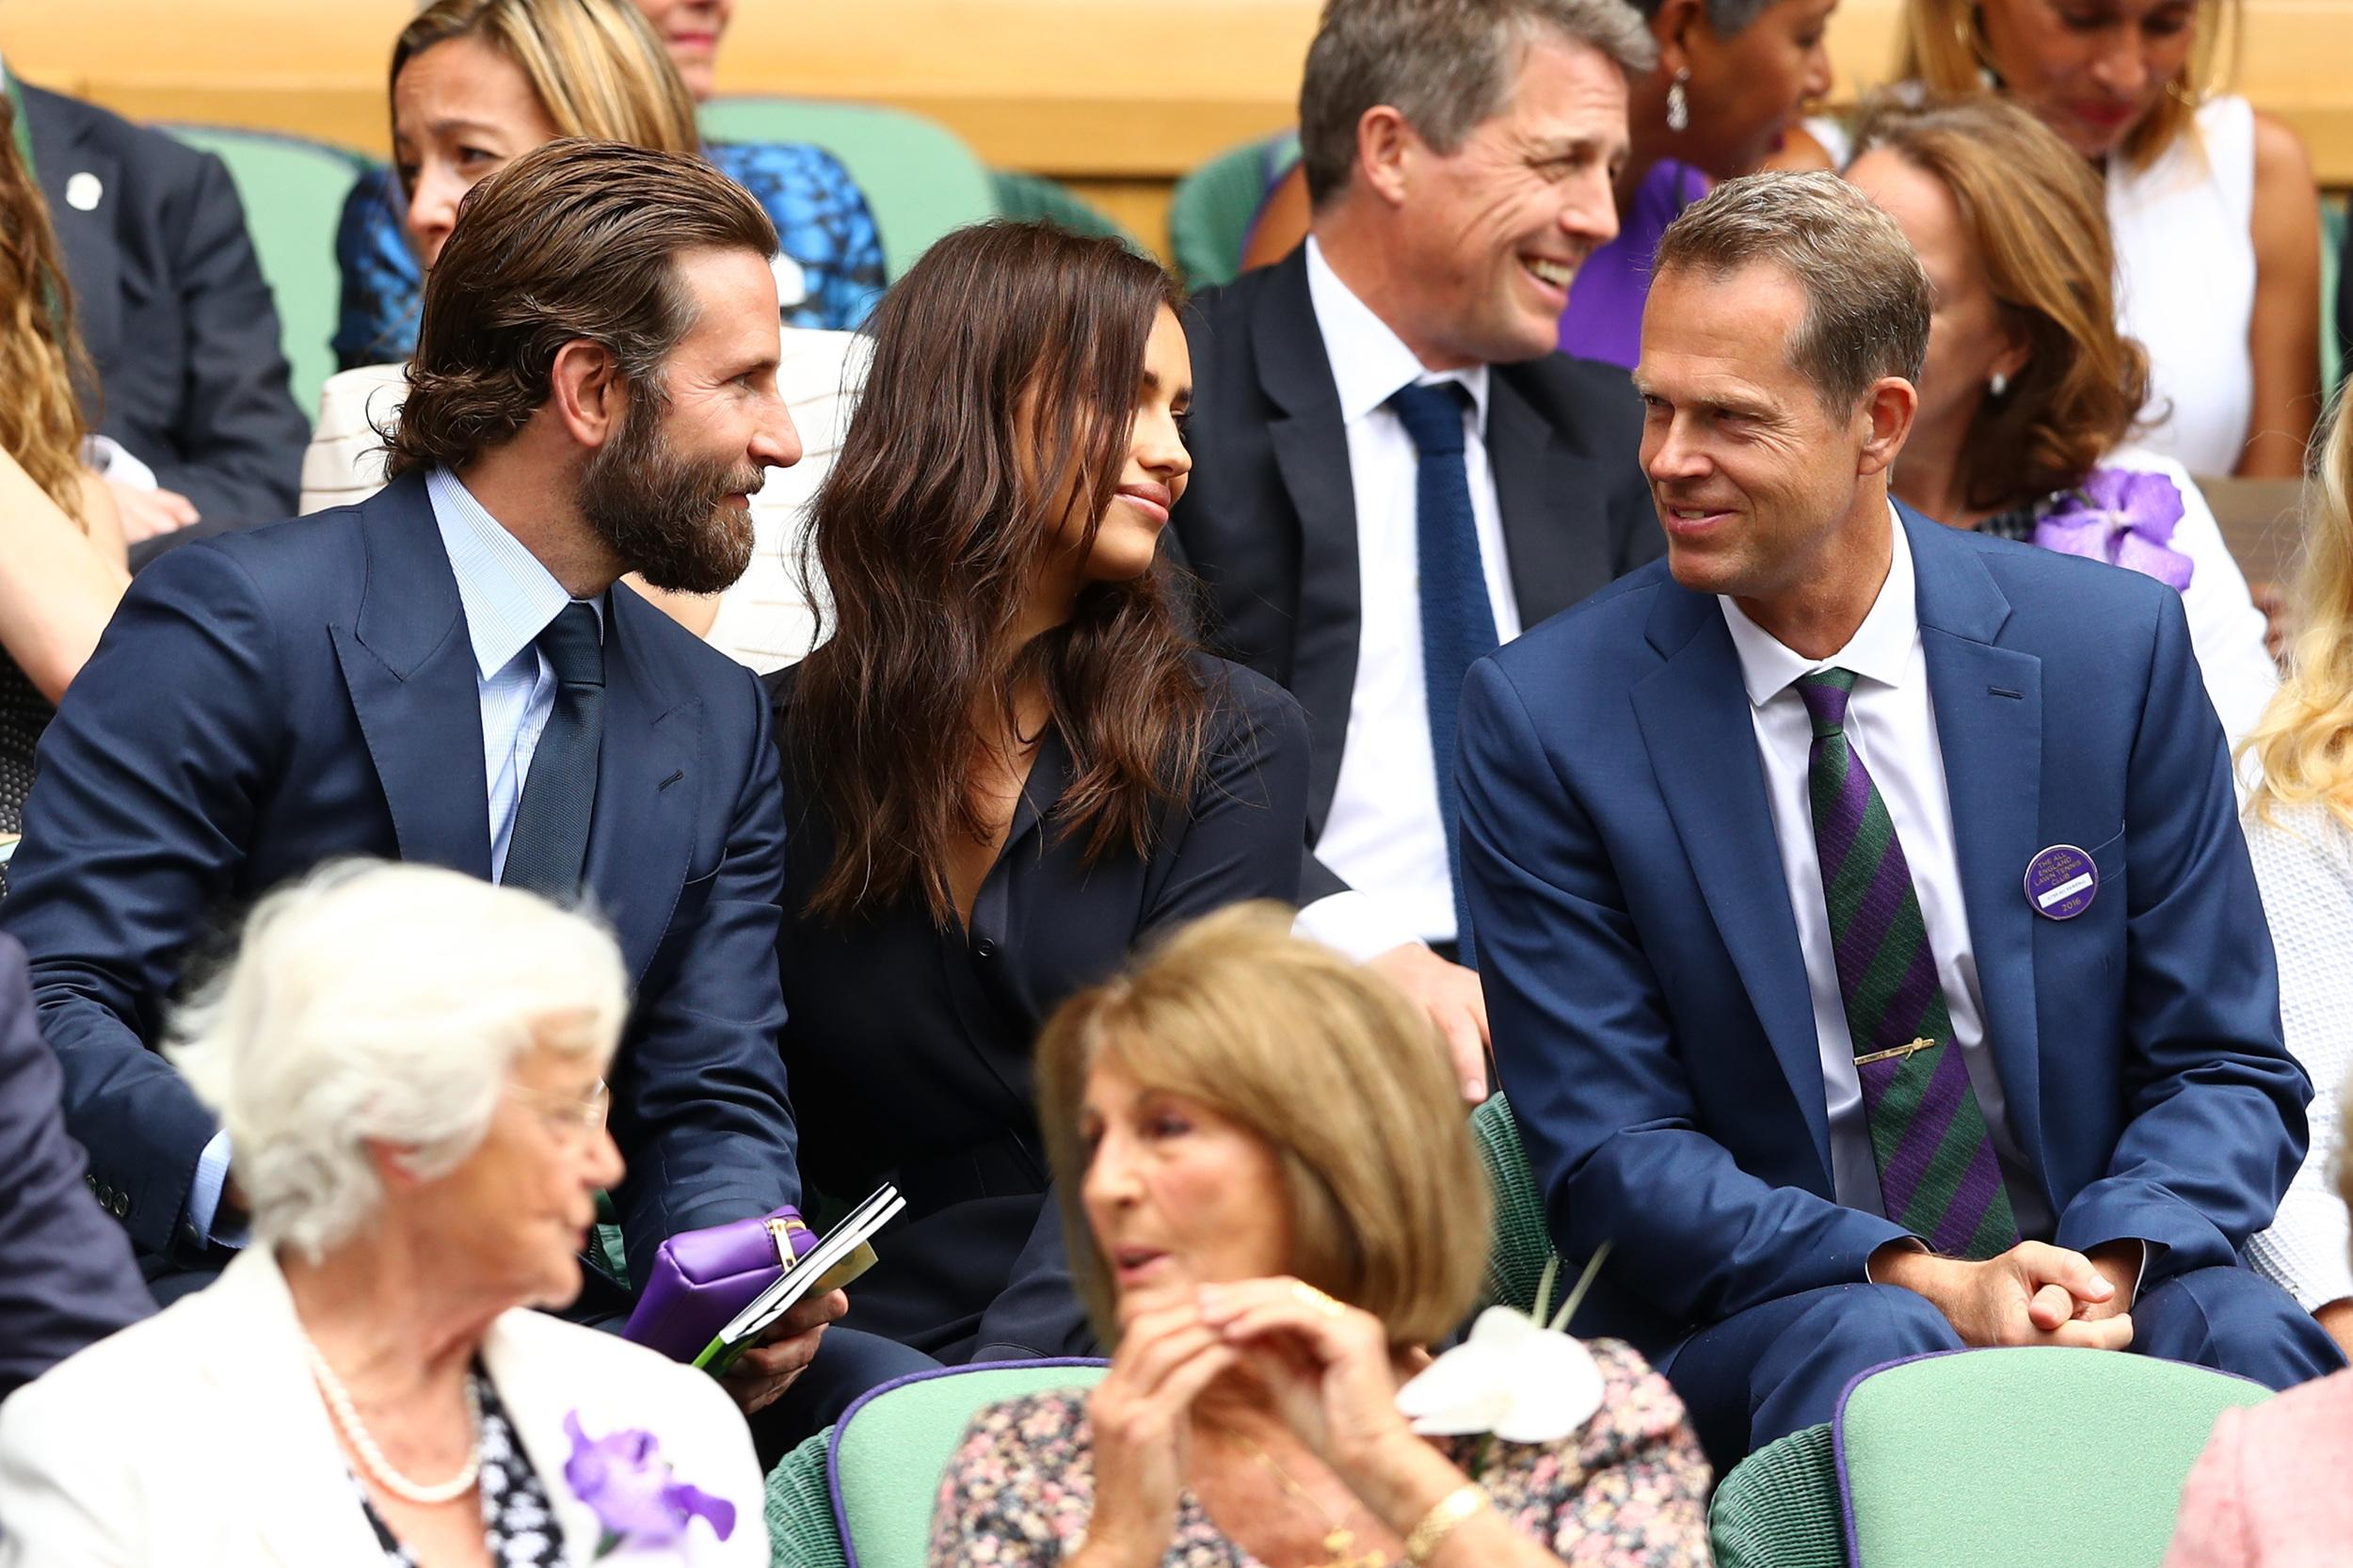 Bradley Cooper and Irina Shayk speak to Stefan Edberg.